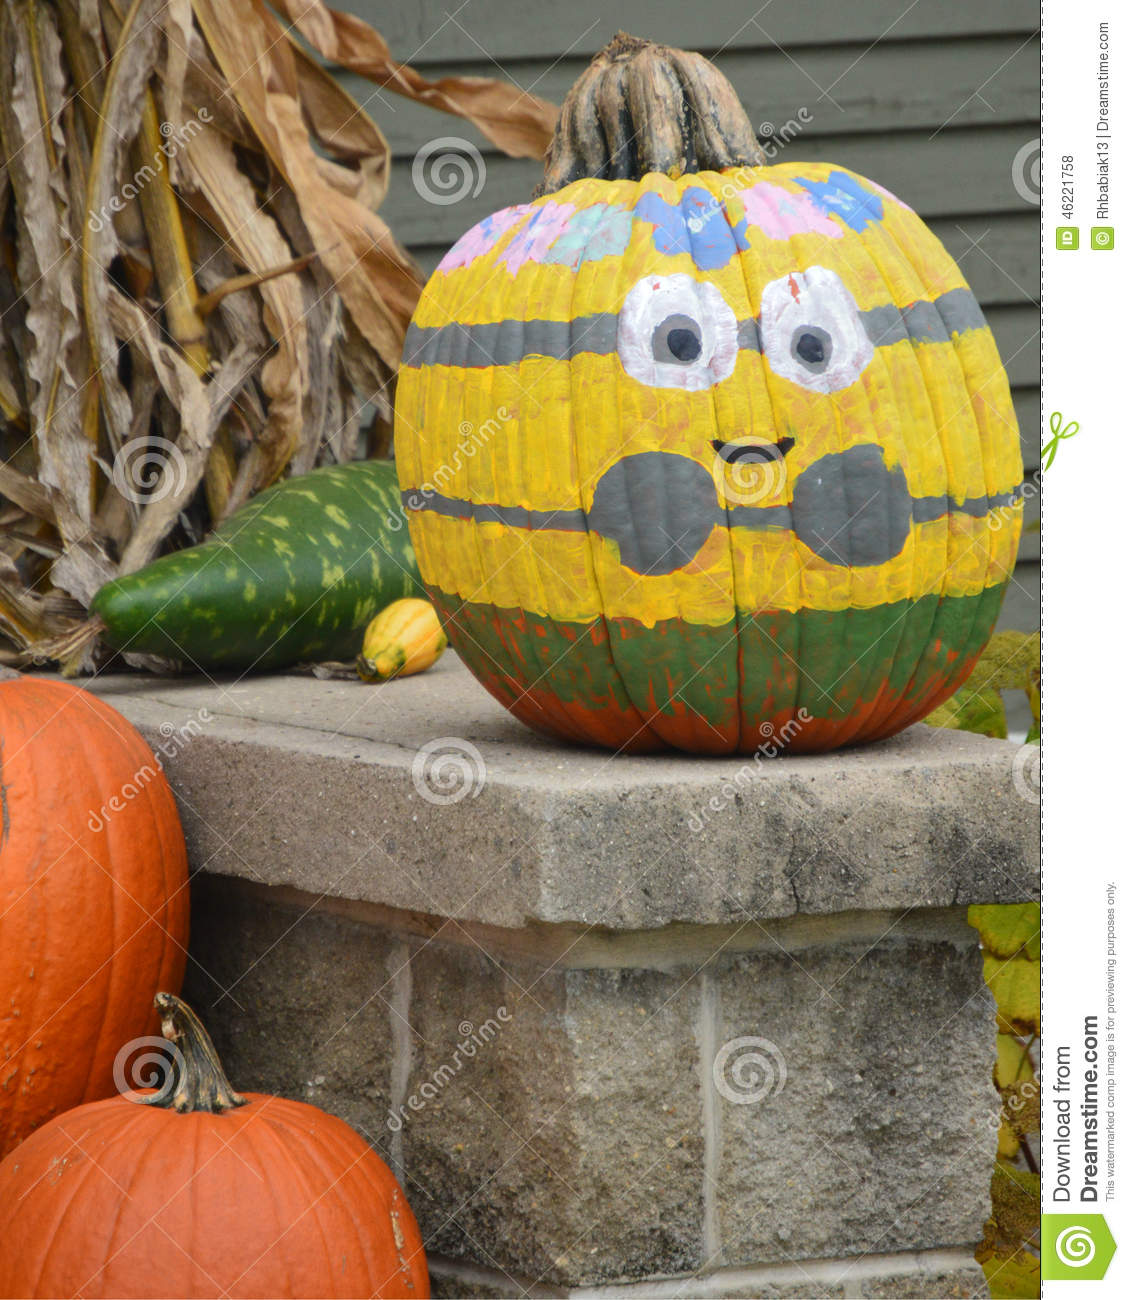 Painted minion pumpkin stock photo image 46221758 Flower painted pumpkins